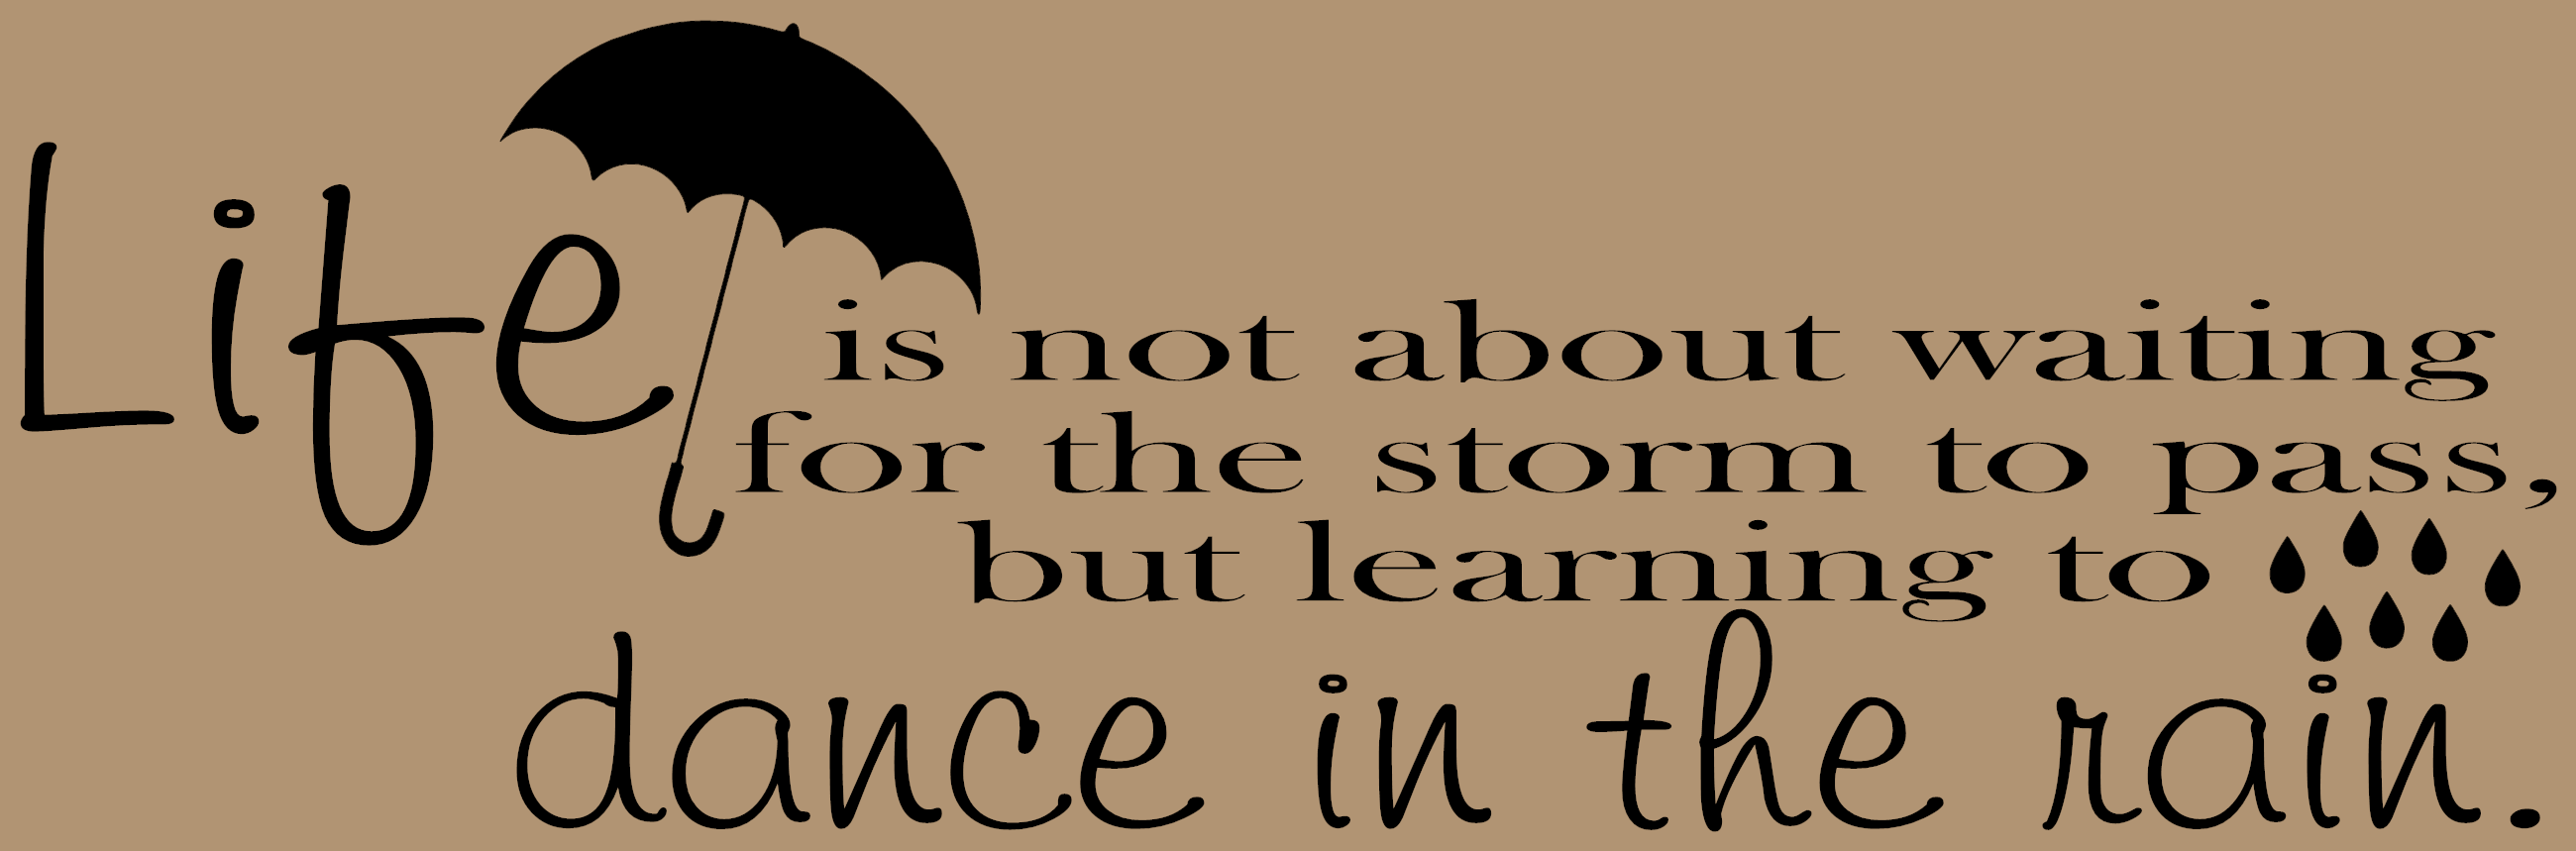 Life Is Not About Waiting For The Storm To Pass But Learning To Dance In The Rain Motivational Wall Quote Inspiring Wall Decal School Vinyl Wall